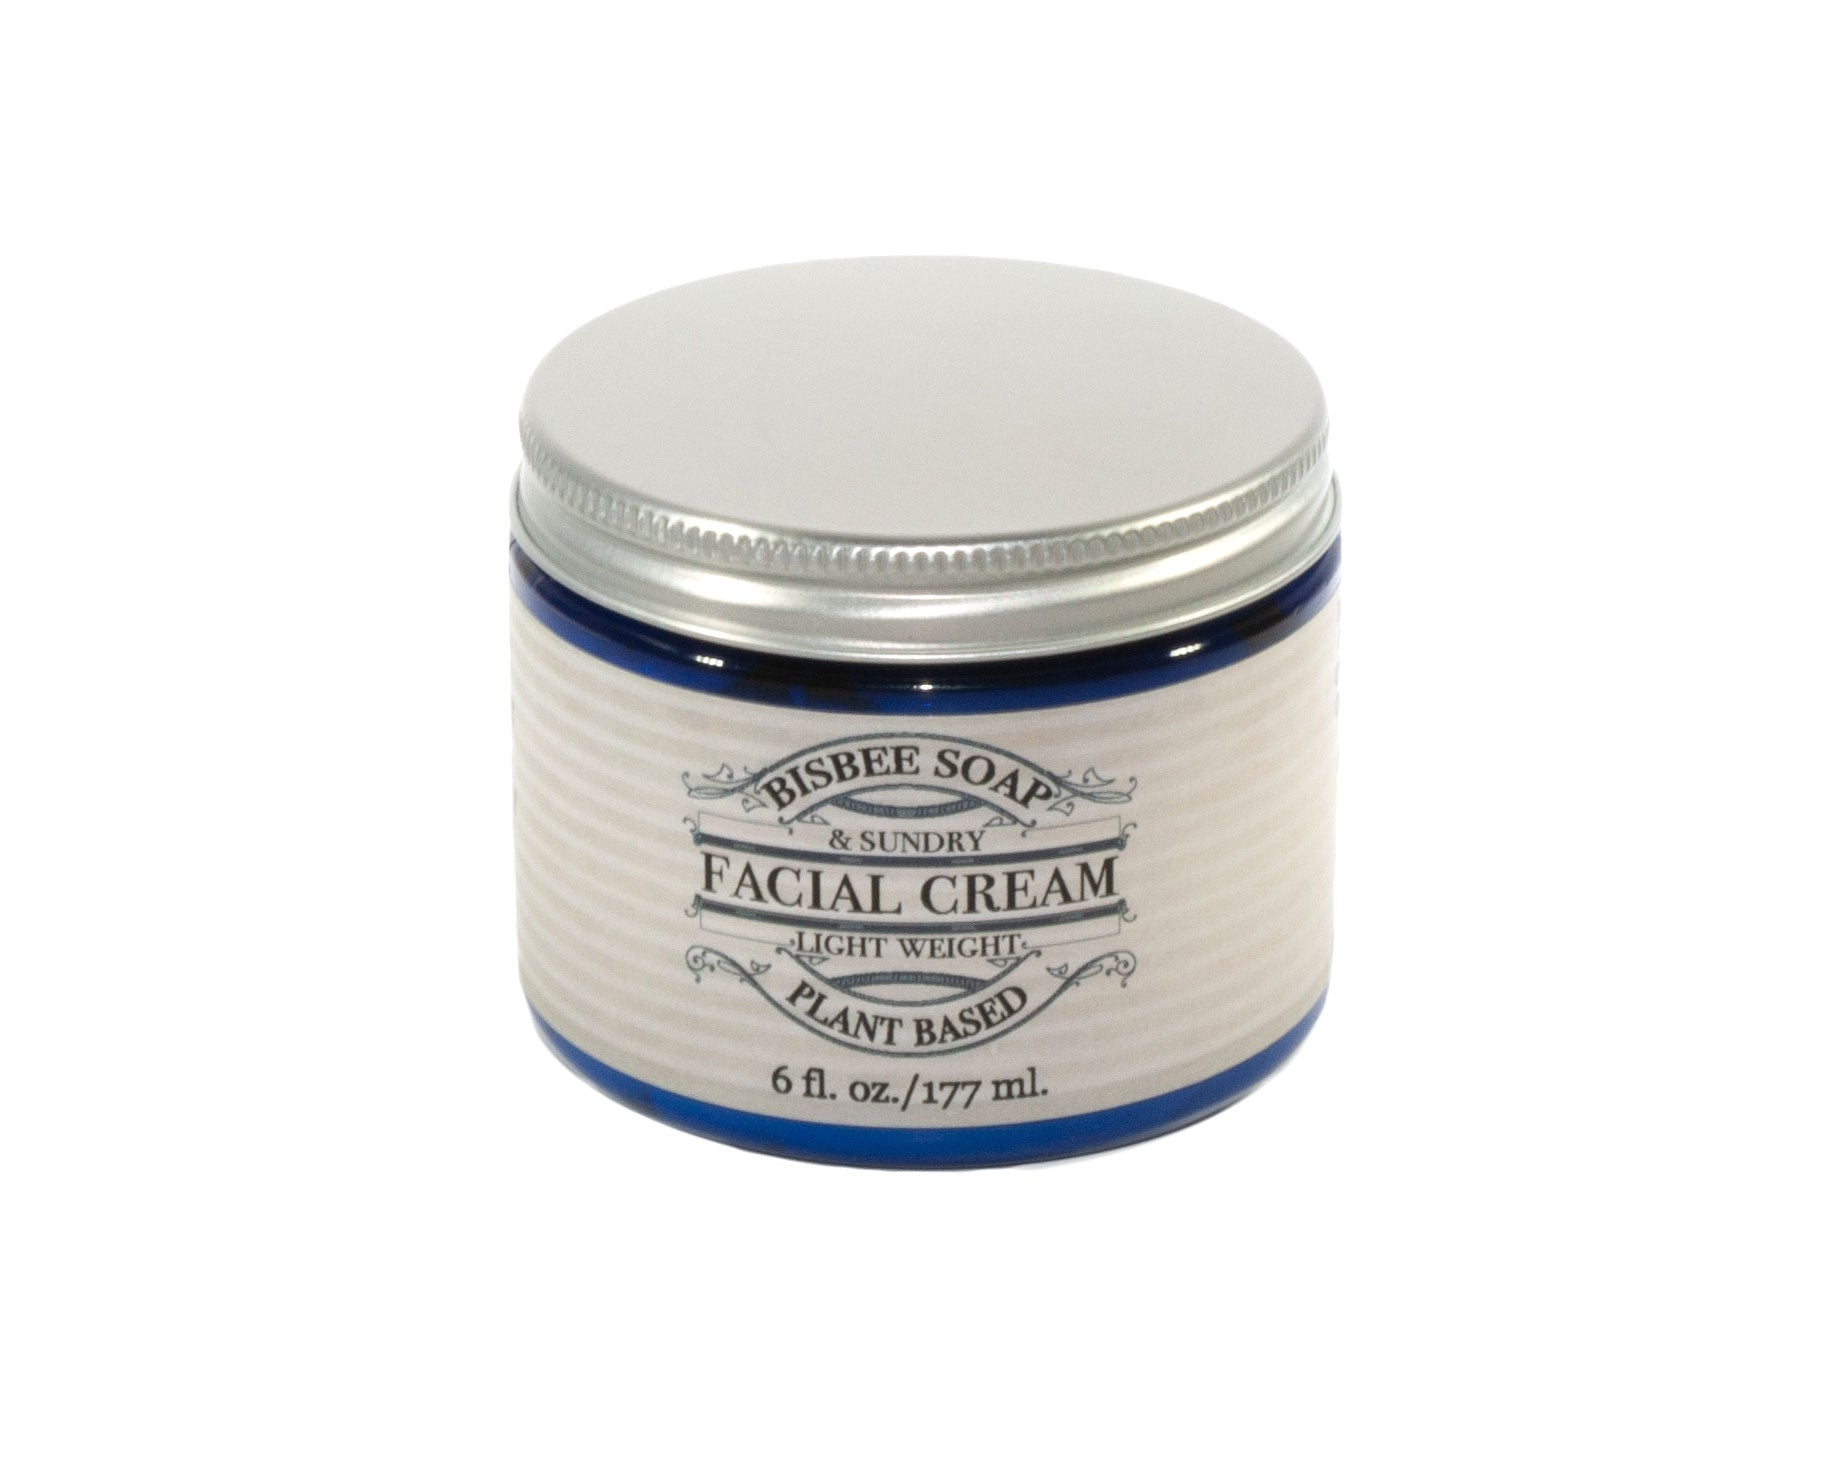 Facial Cream - 6 fl. oz.